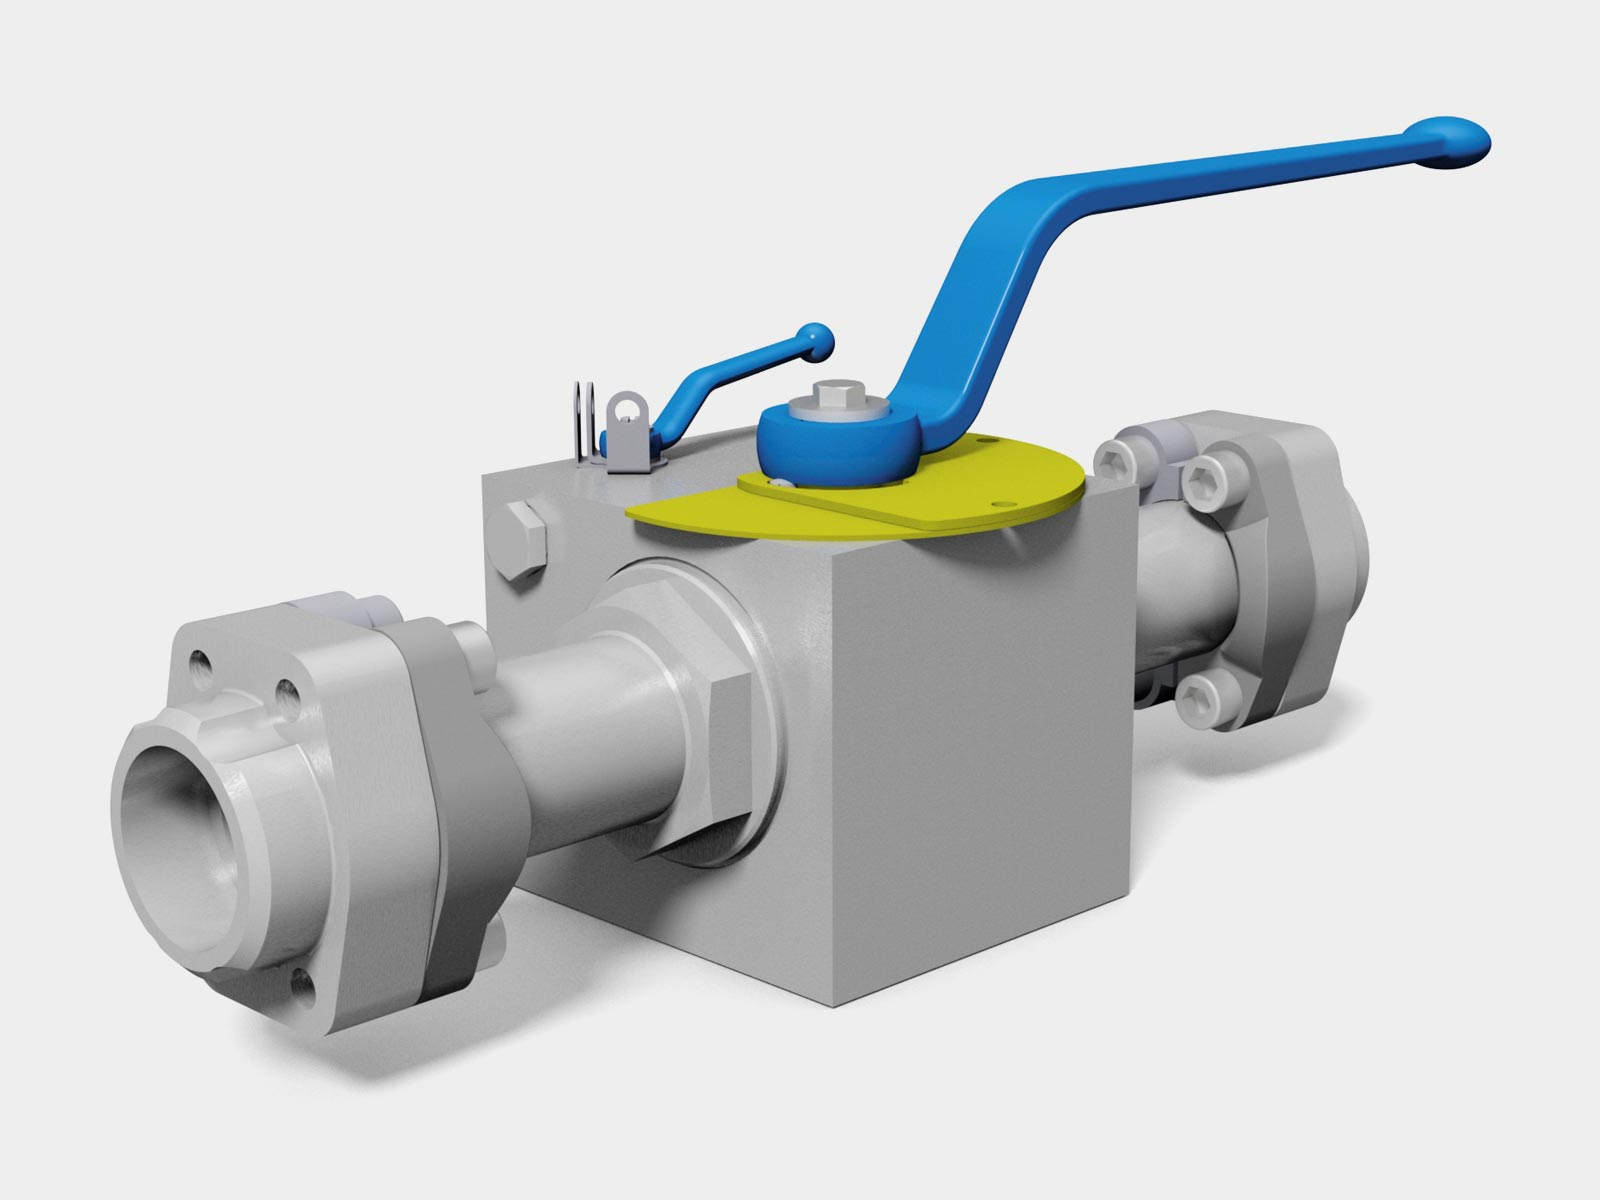 MHA ZENTGRAF Bypass ball valve with flange connection